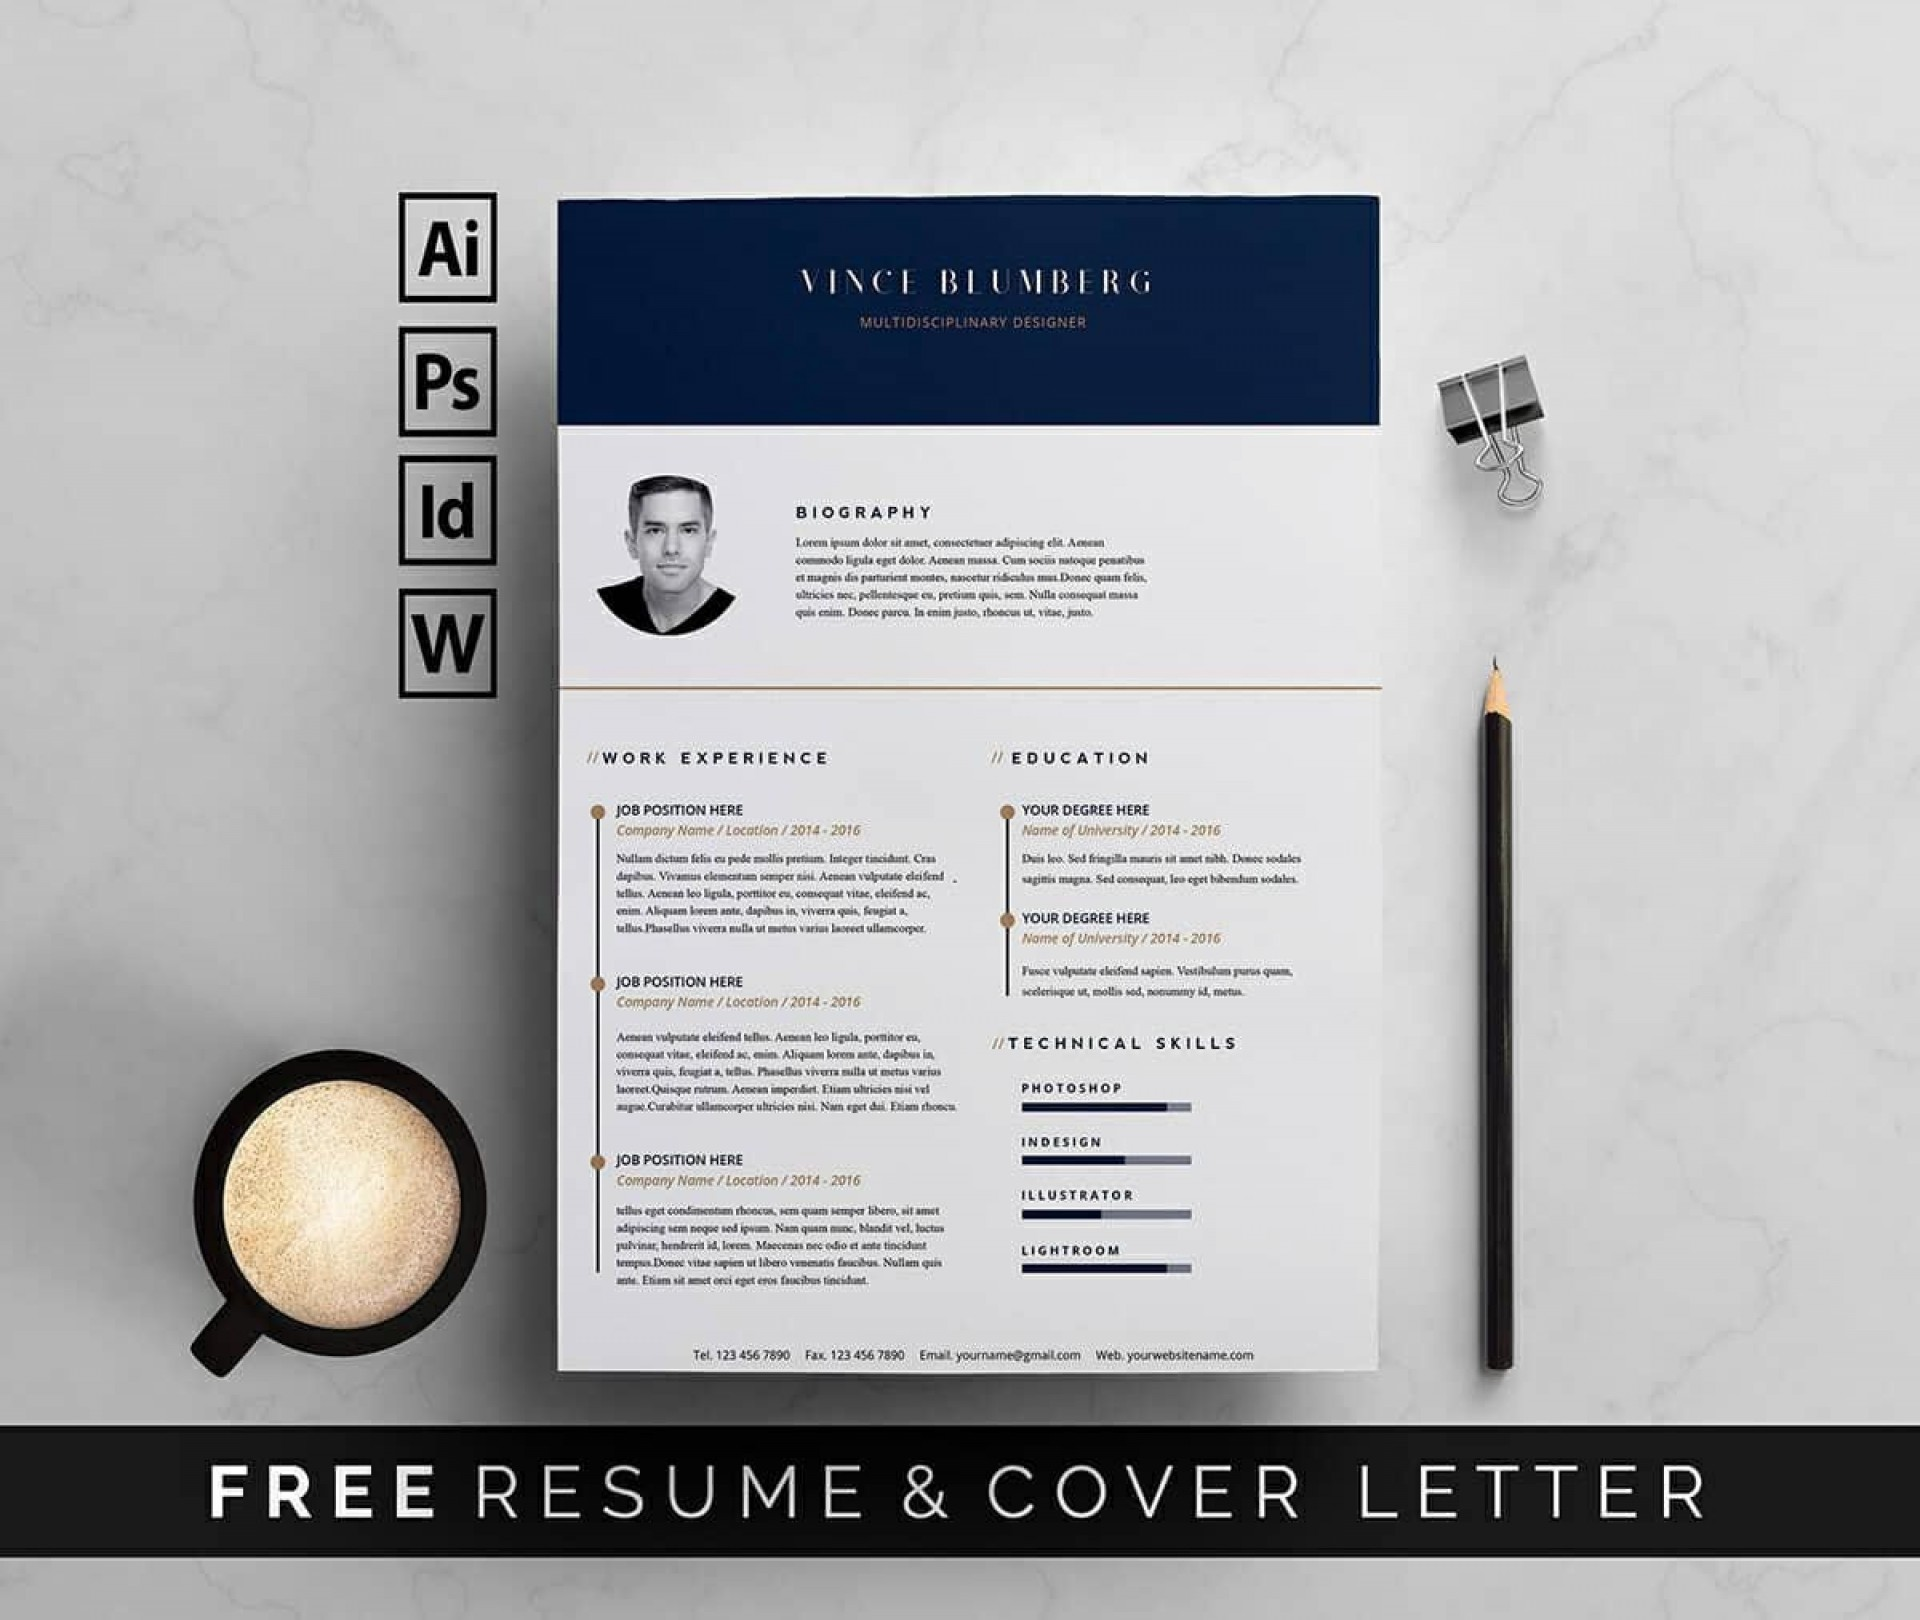 009 Dreaded Resume Template Free Word Picture  Download 2020 Cv1920